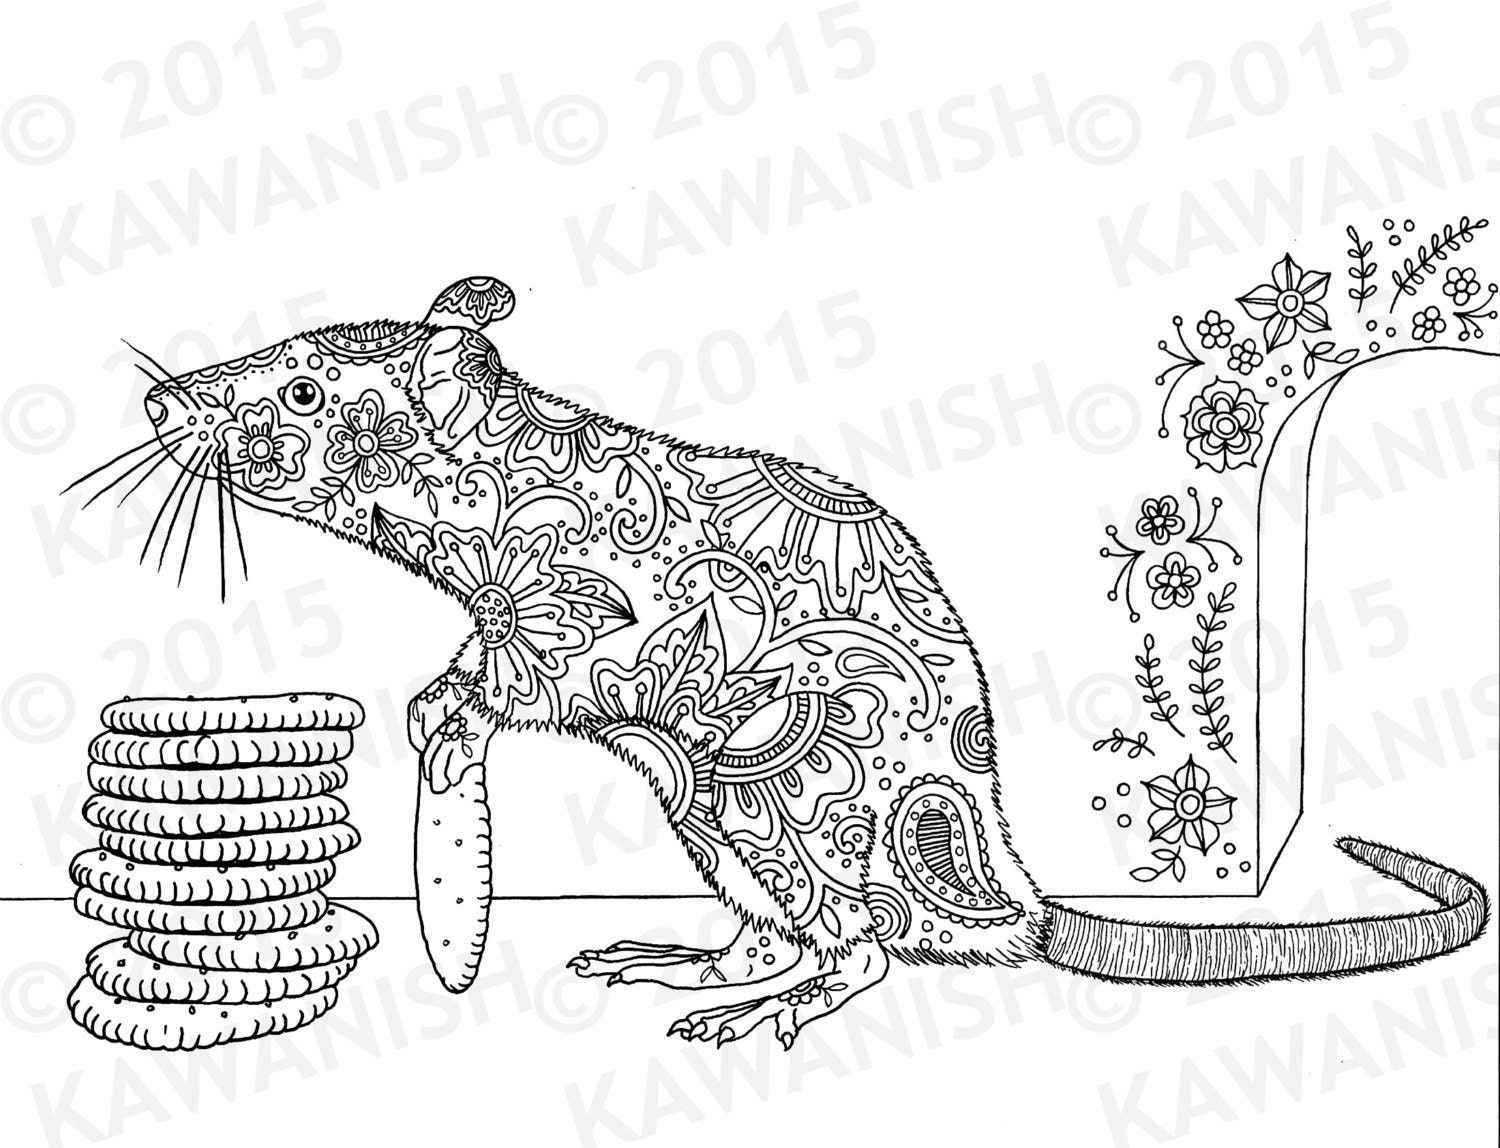 Cracker stacker rat adult coloring page gift wall art floral for Rat coloring pages